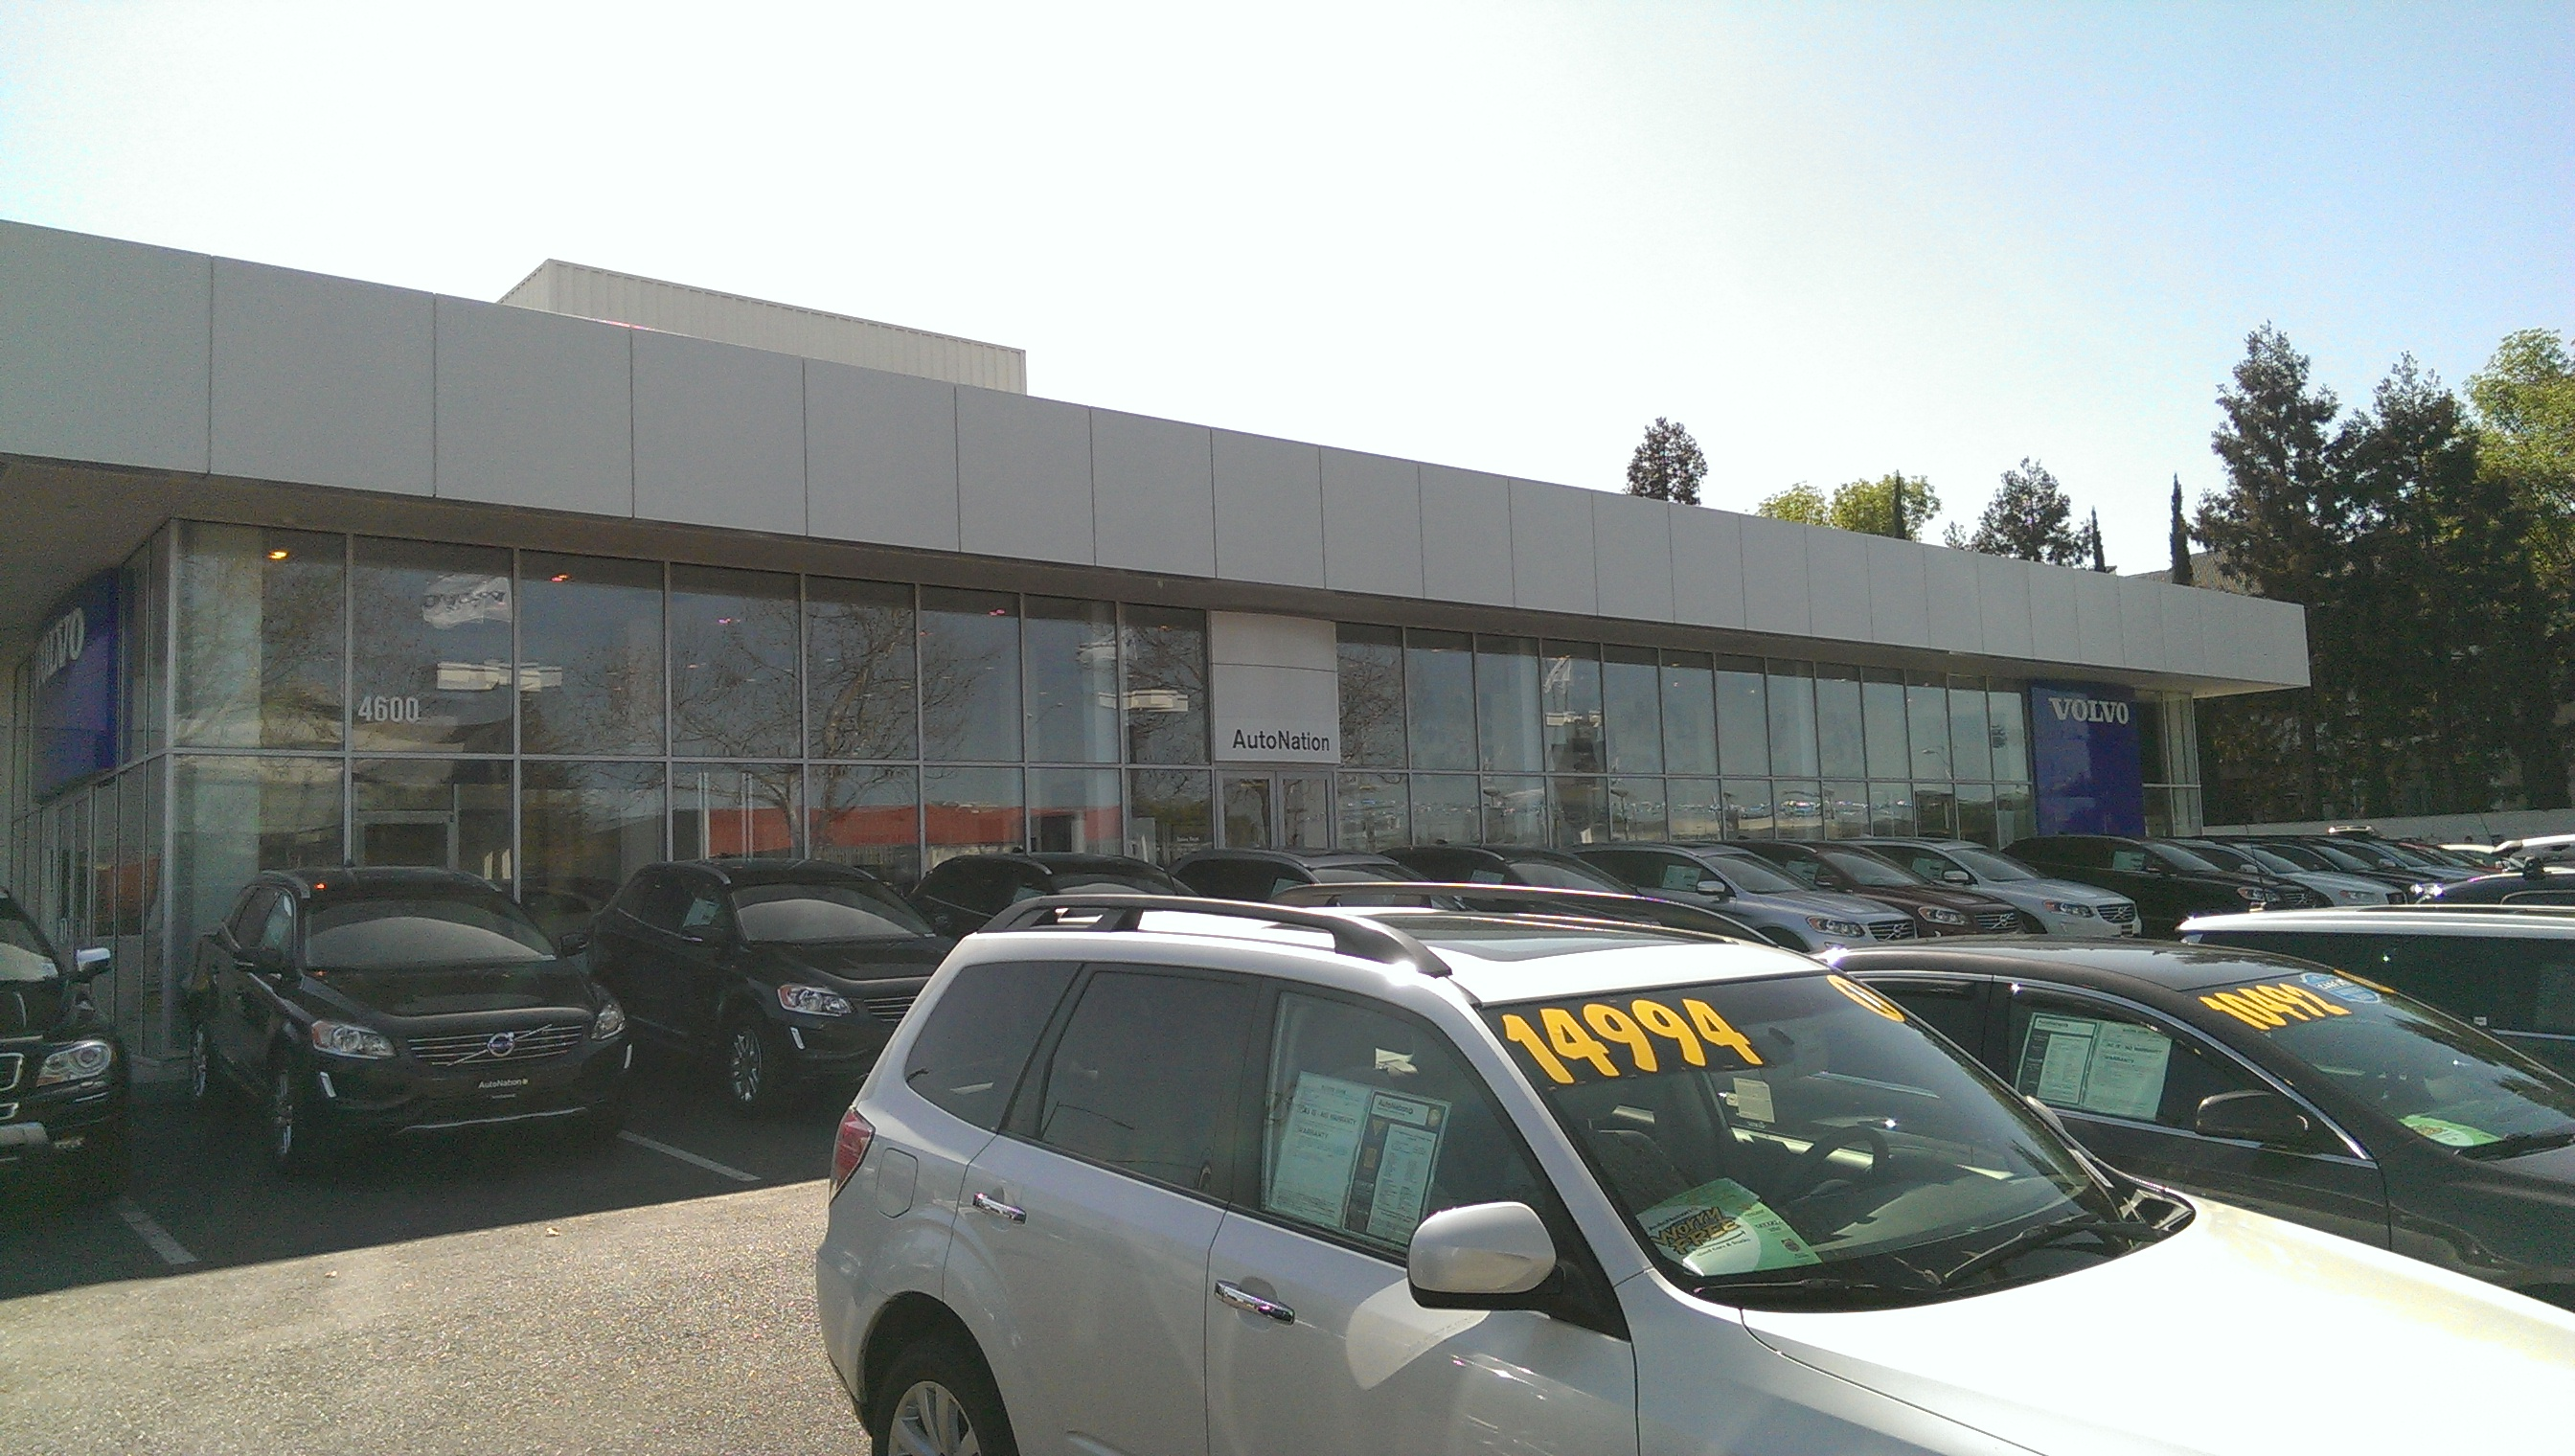 Autonation volvo cars san jose at 4600 stevens creek for Steven creek mercedes benz